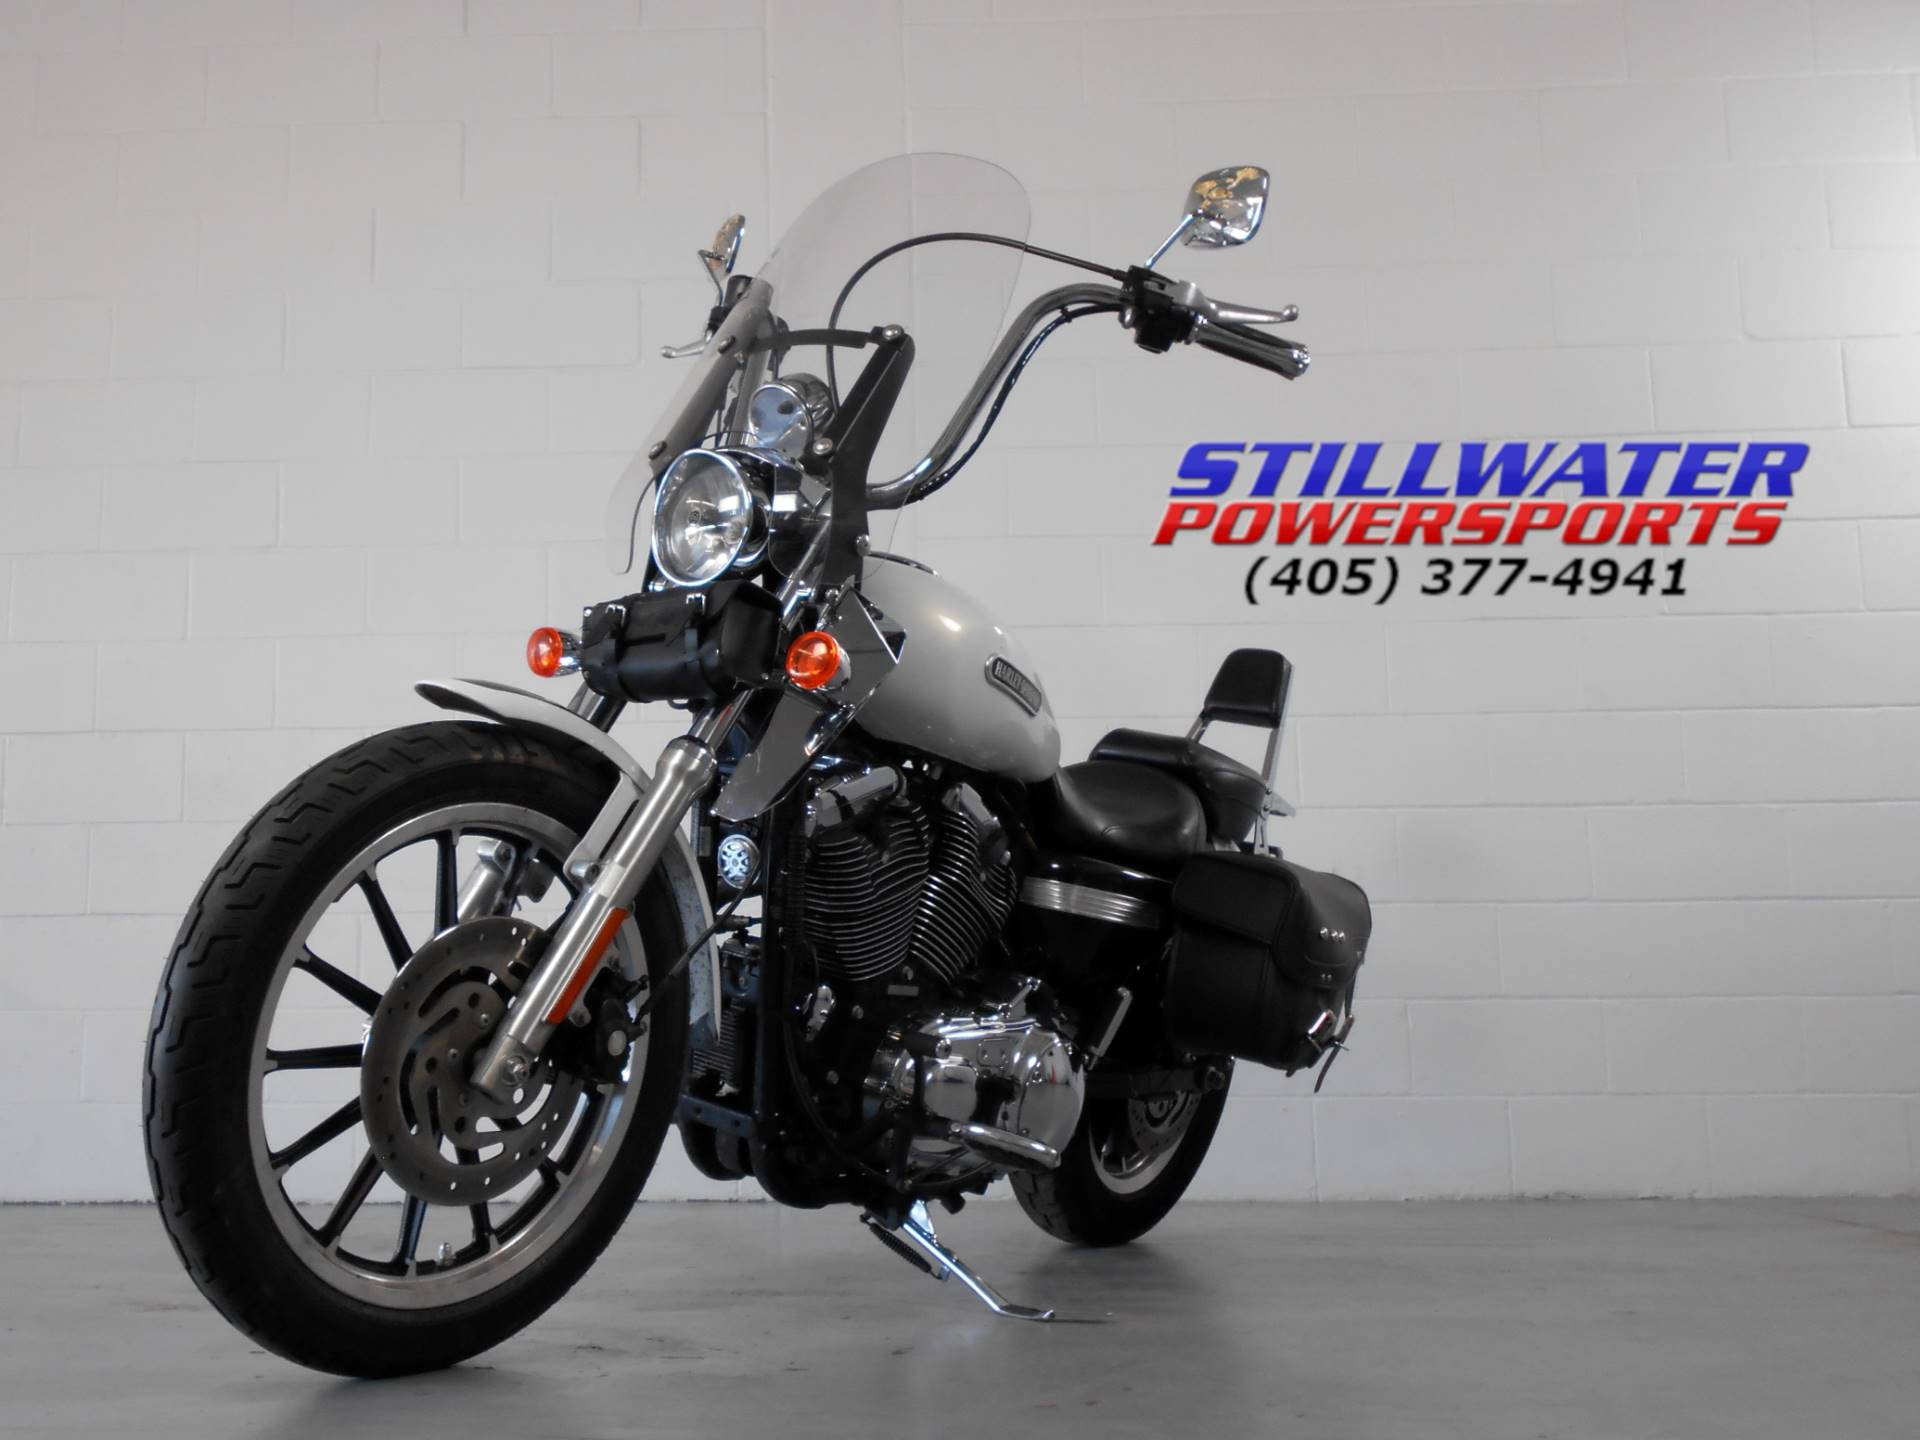 2007 Harley-Davidson Sportster® 1200 Low in Stillwater, Oklahoma - Photo 7